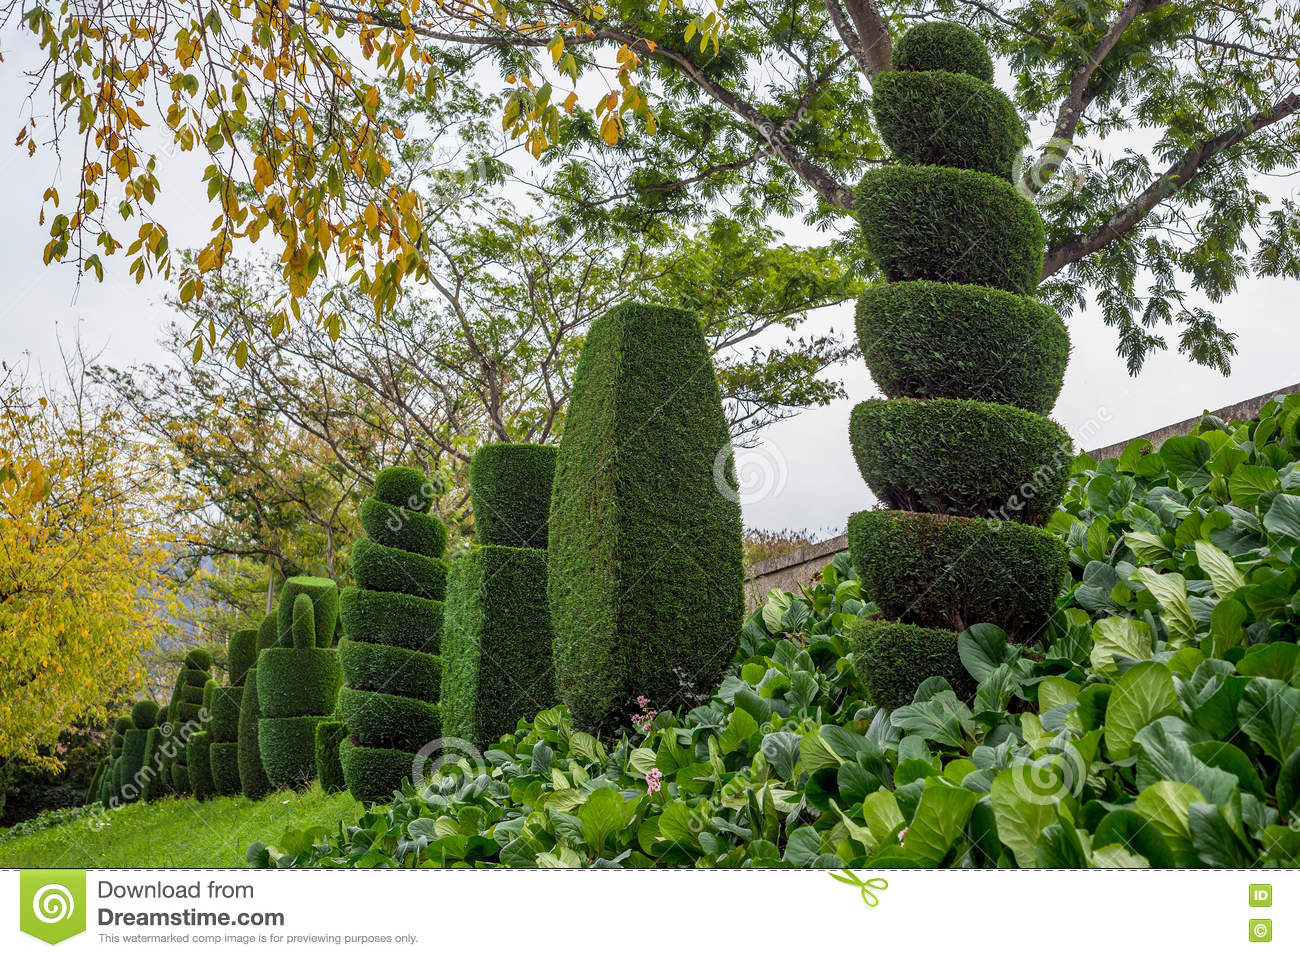 Topiary Tree Horticulture Spiral Cut Thuja Spruce Pine Many Garden Stock Image Image Of Spiral Decoration 81346497